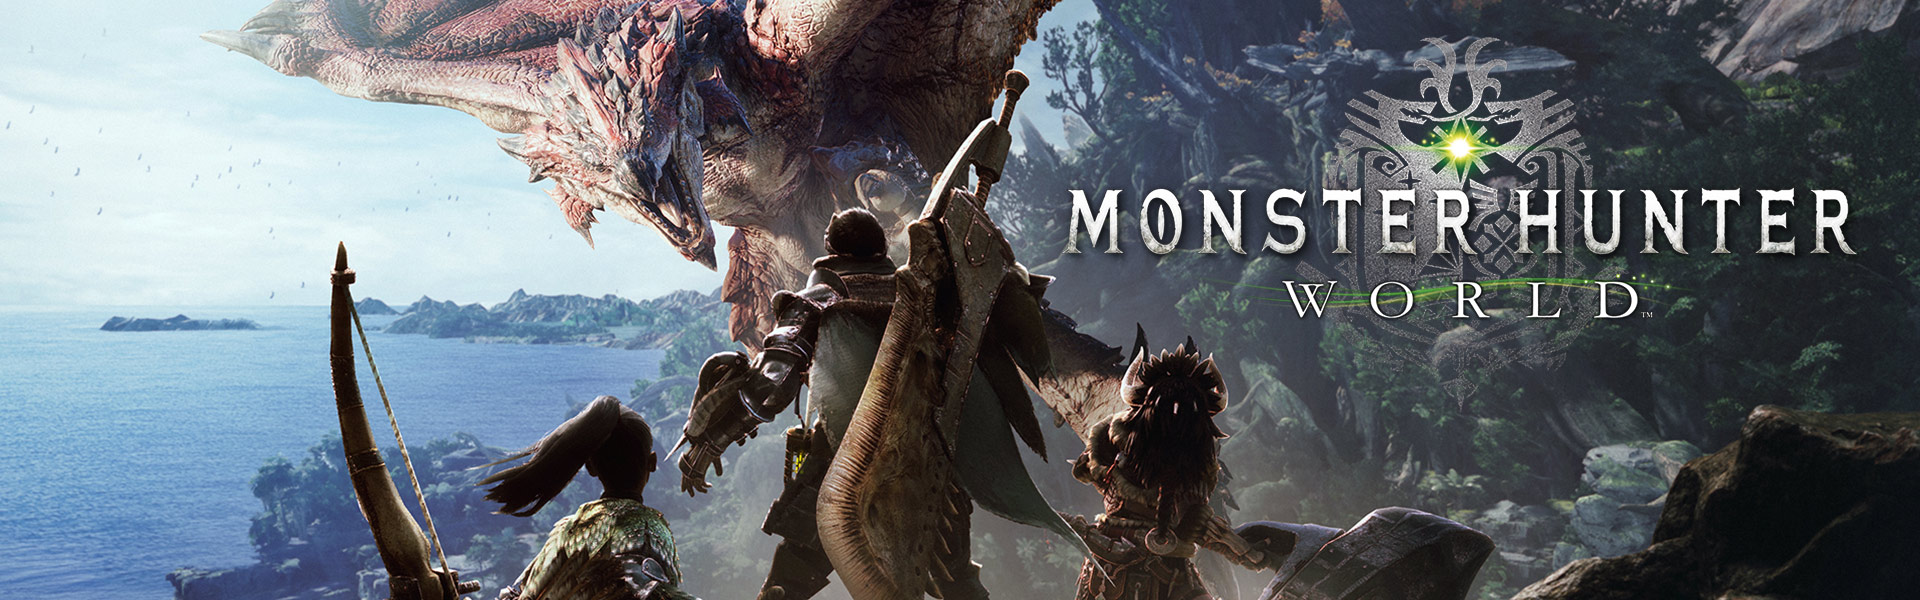 Monster Hunter World, karakterer møter flyvende monster i kampklar posisjon